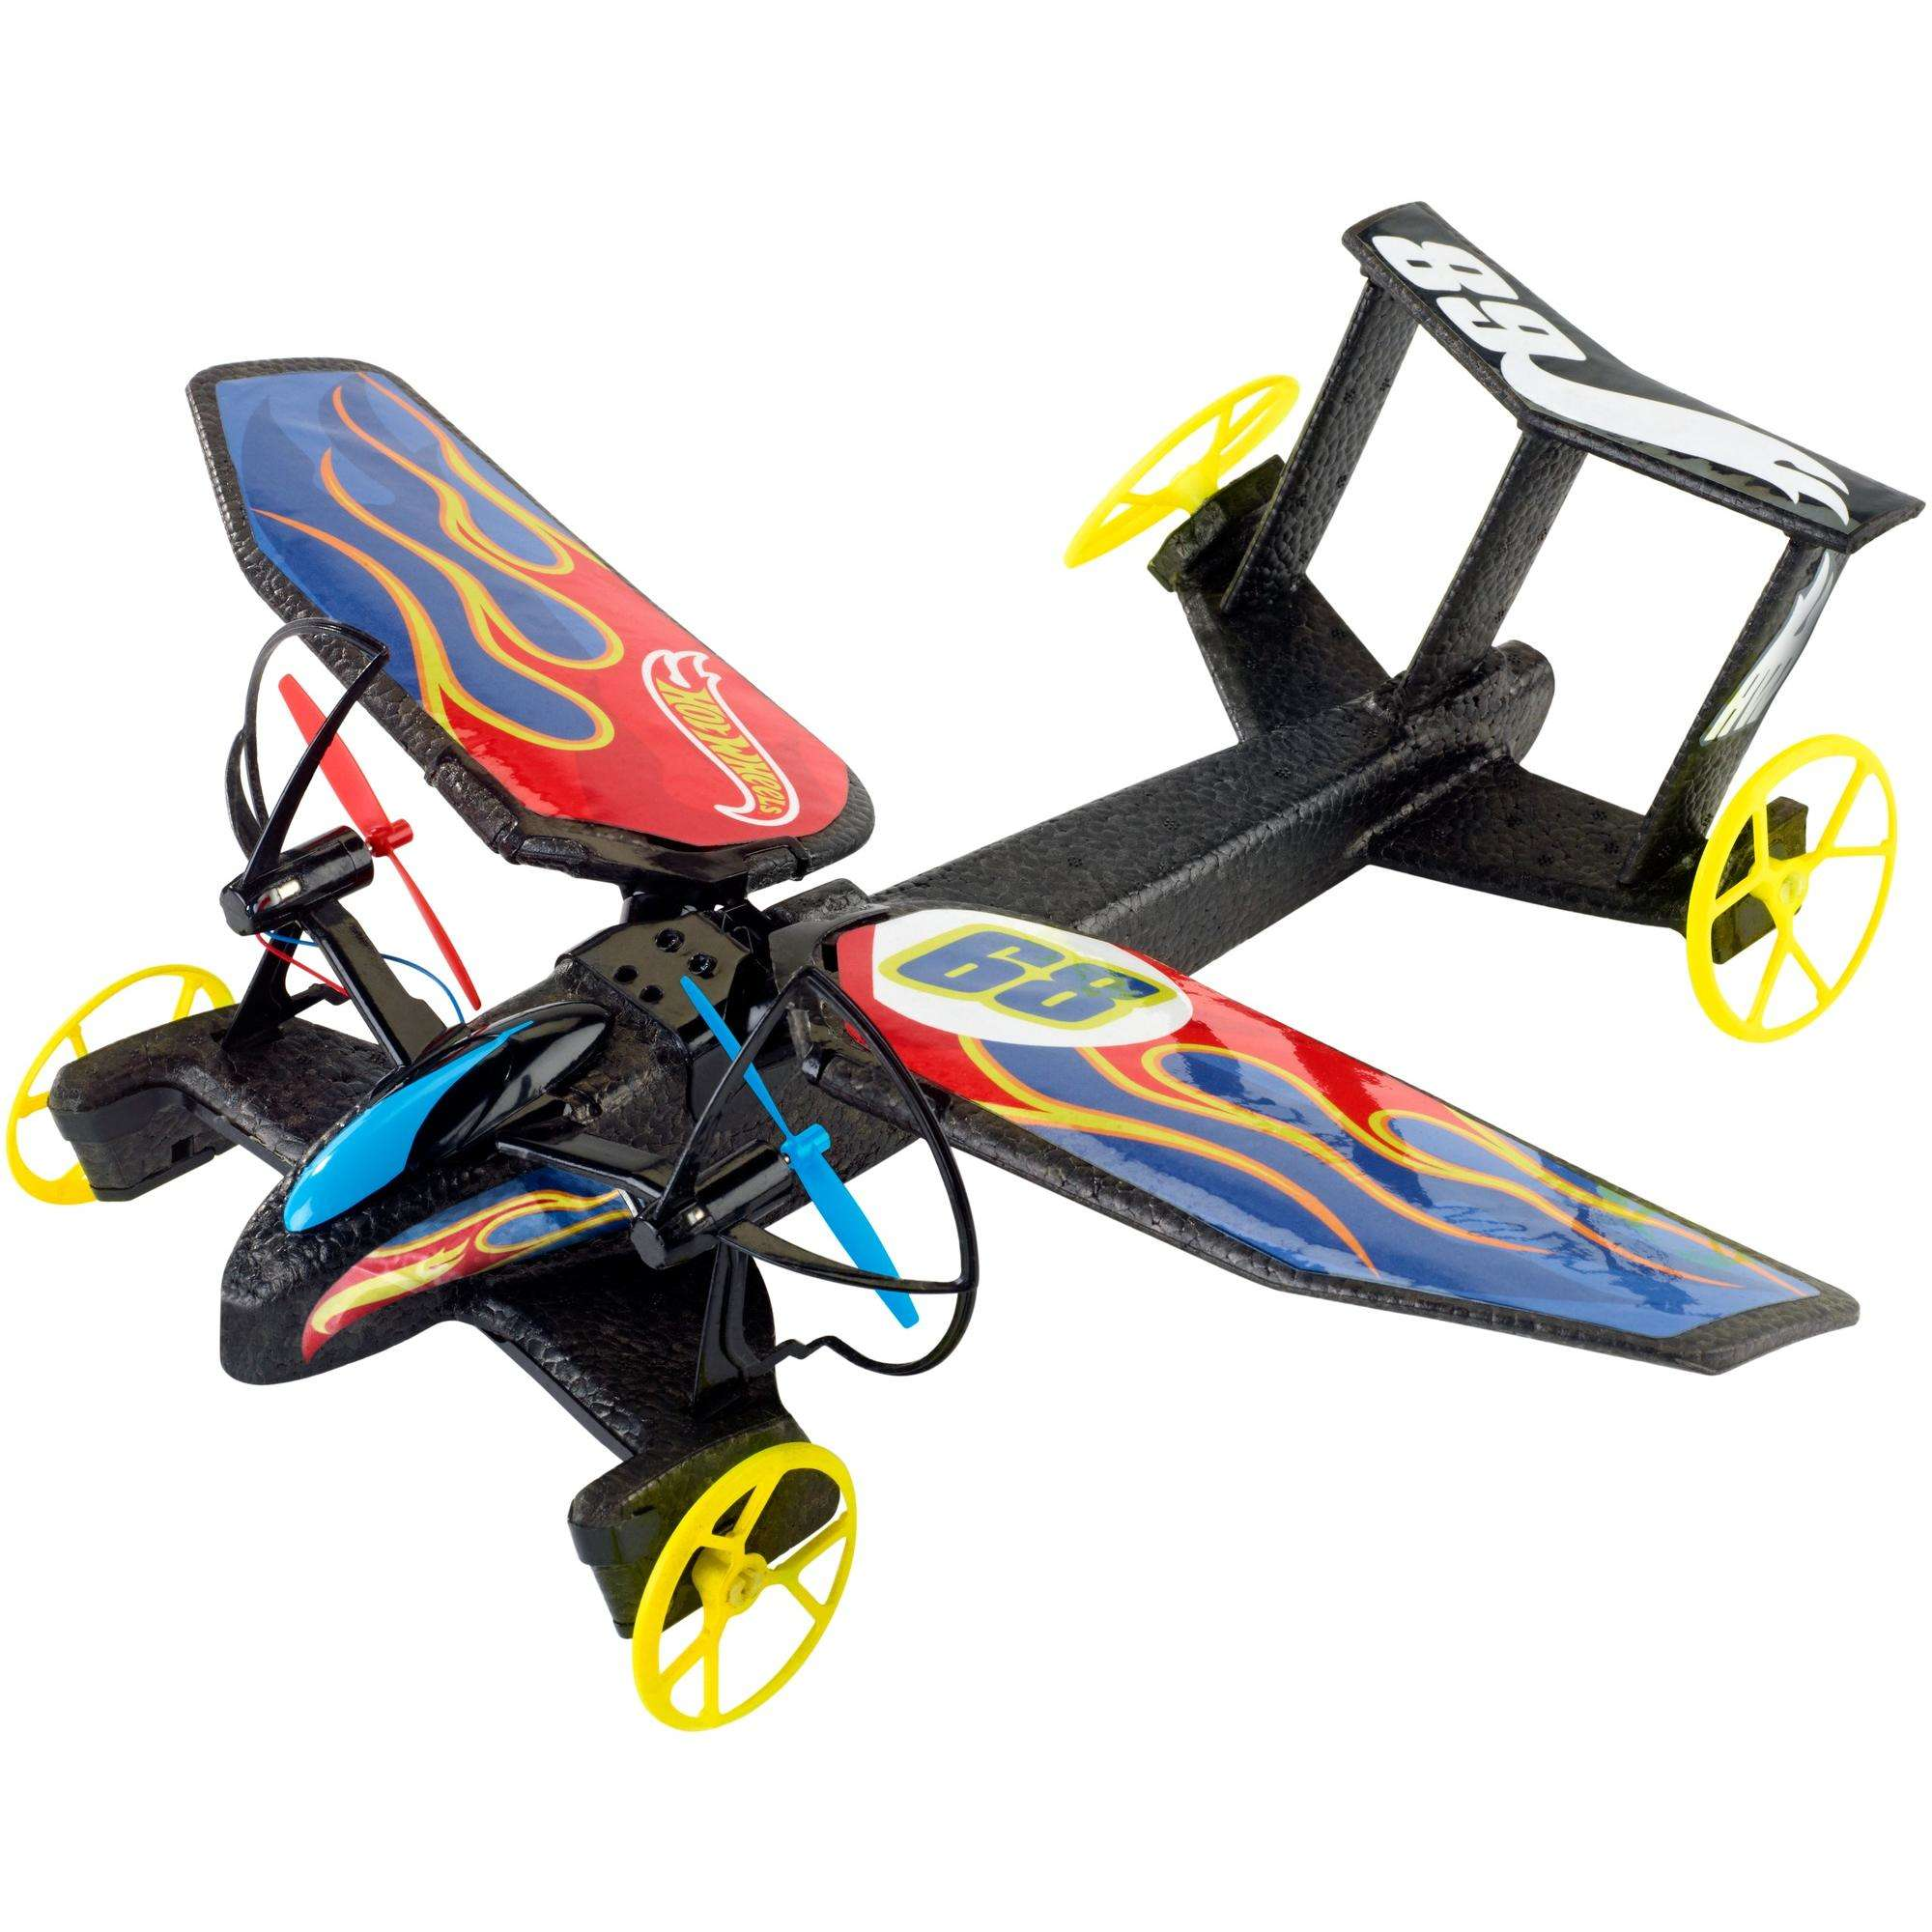 Hot Wheels RC Sky Shock Vehicle (Flame) by Mattel